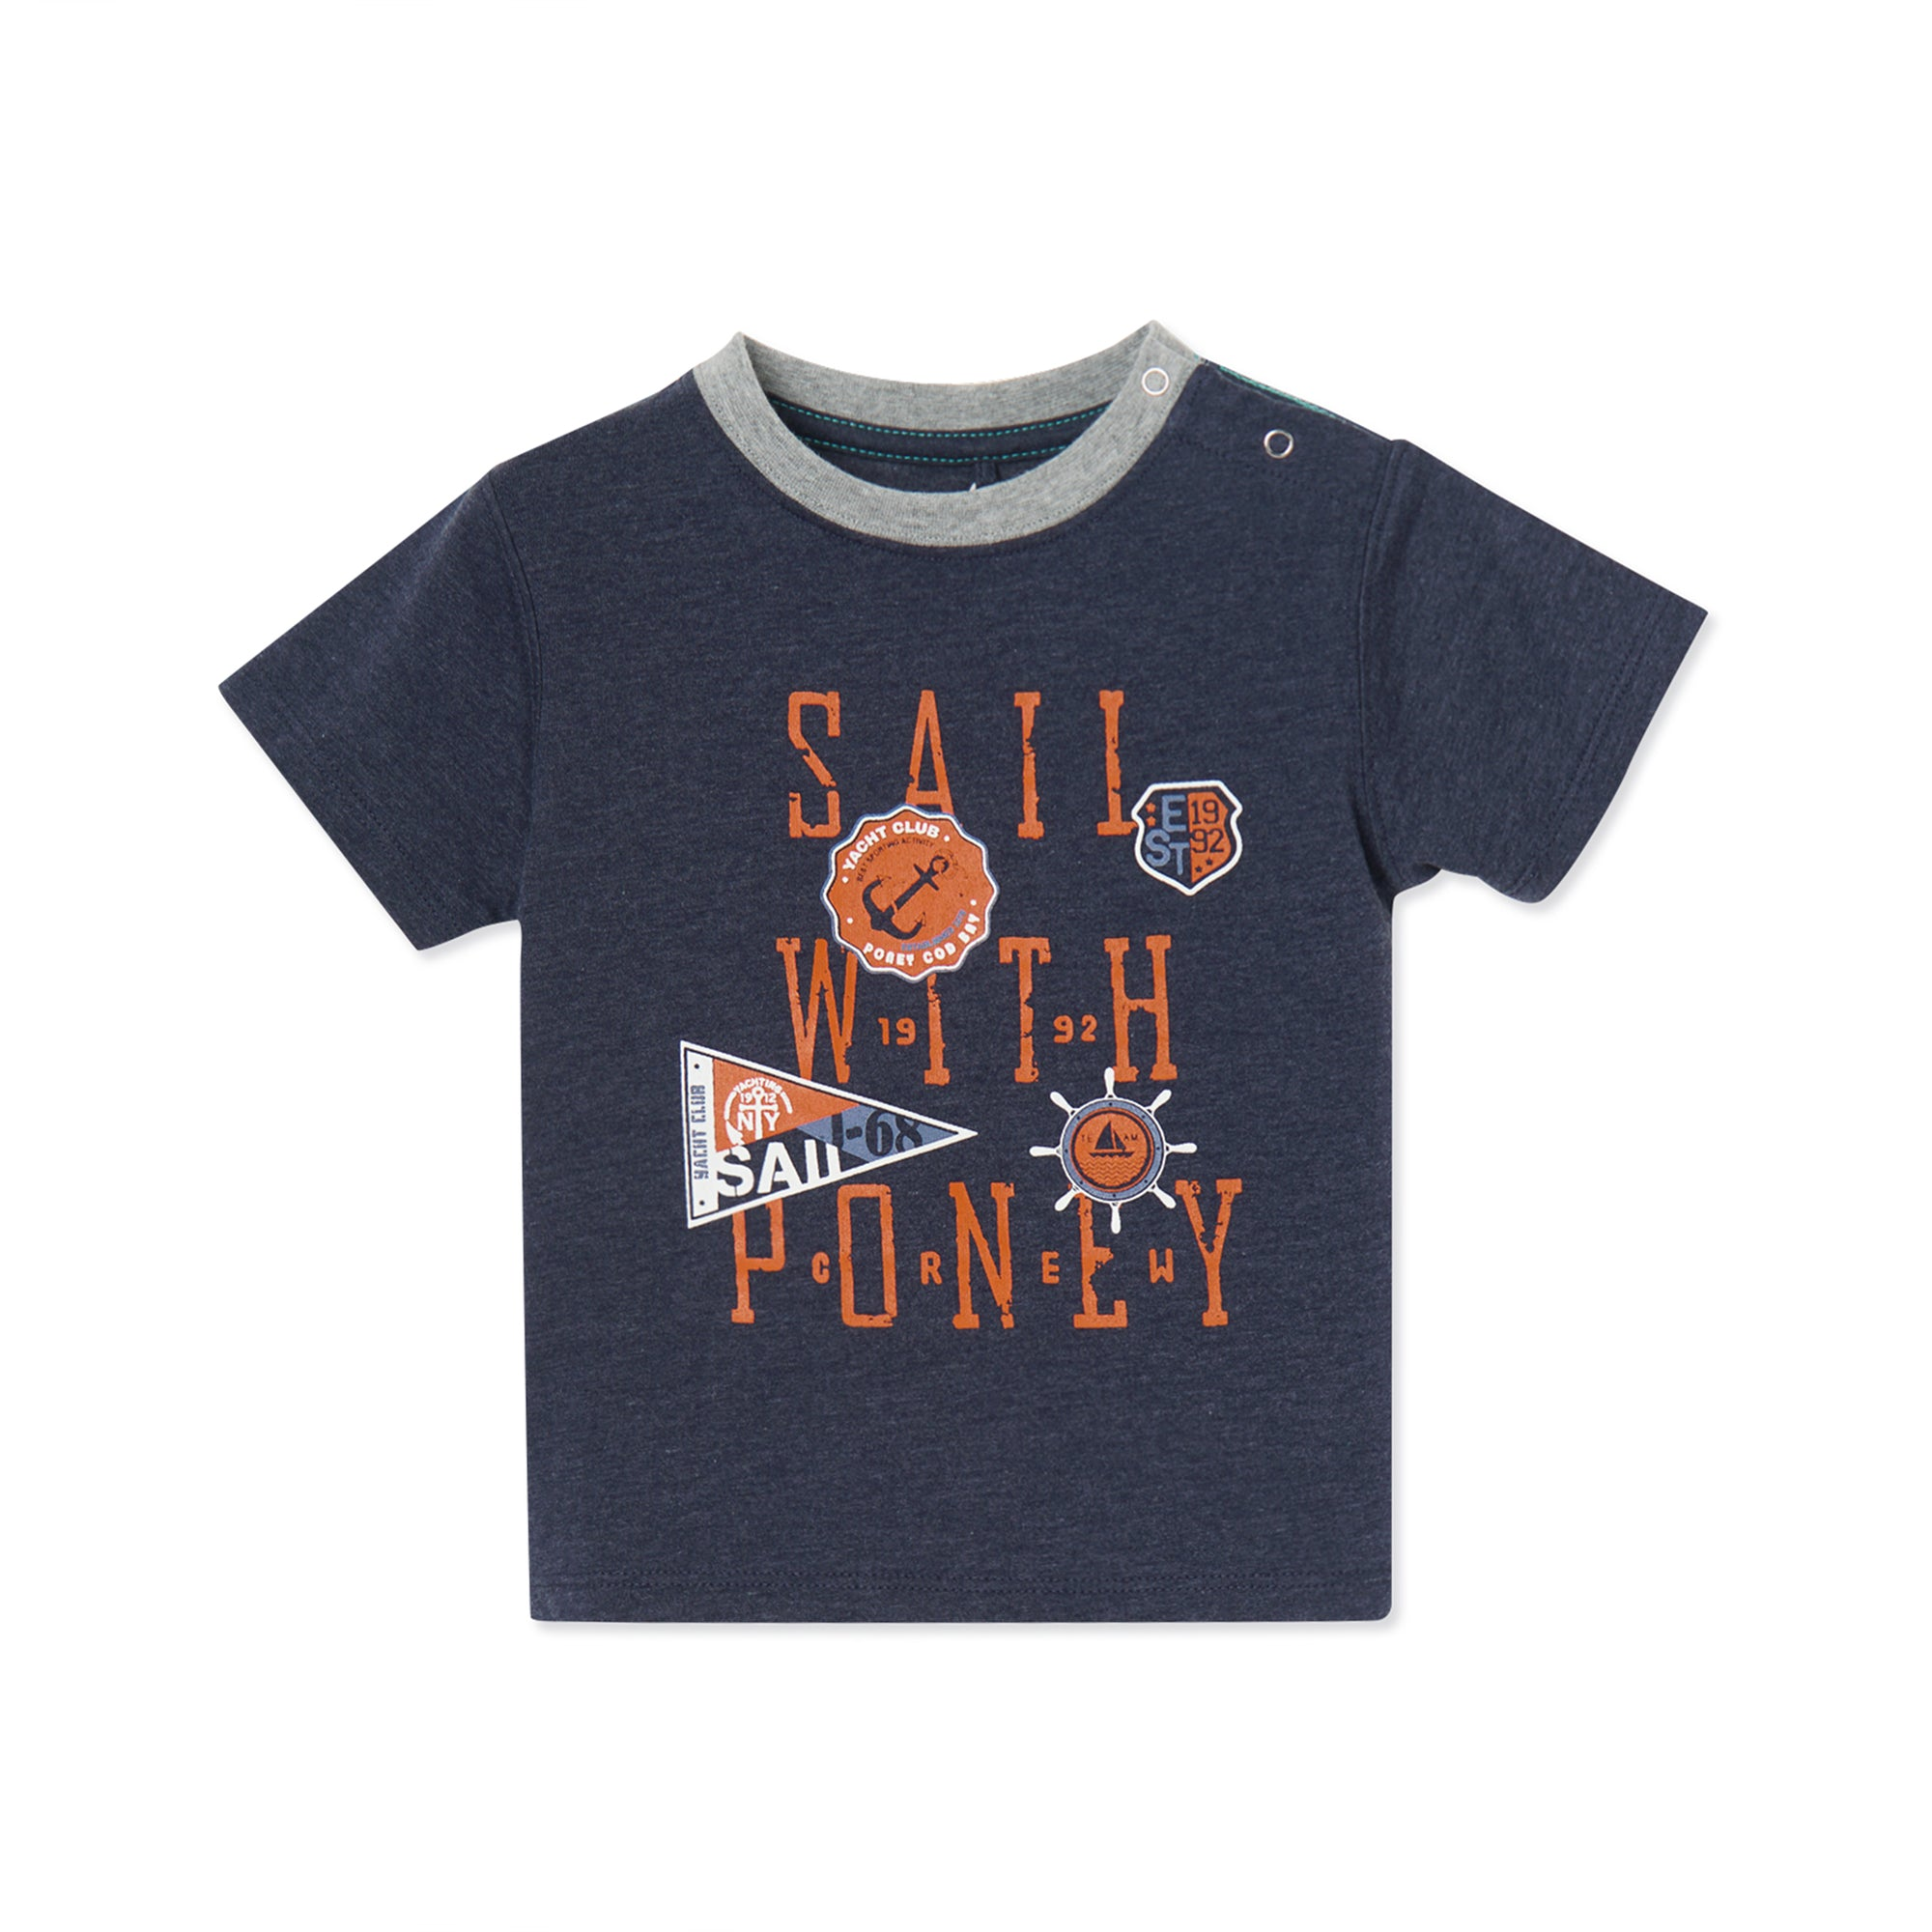 Poney Boys S/Sleeve Tee 8503 (6mths-12yrs)